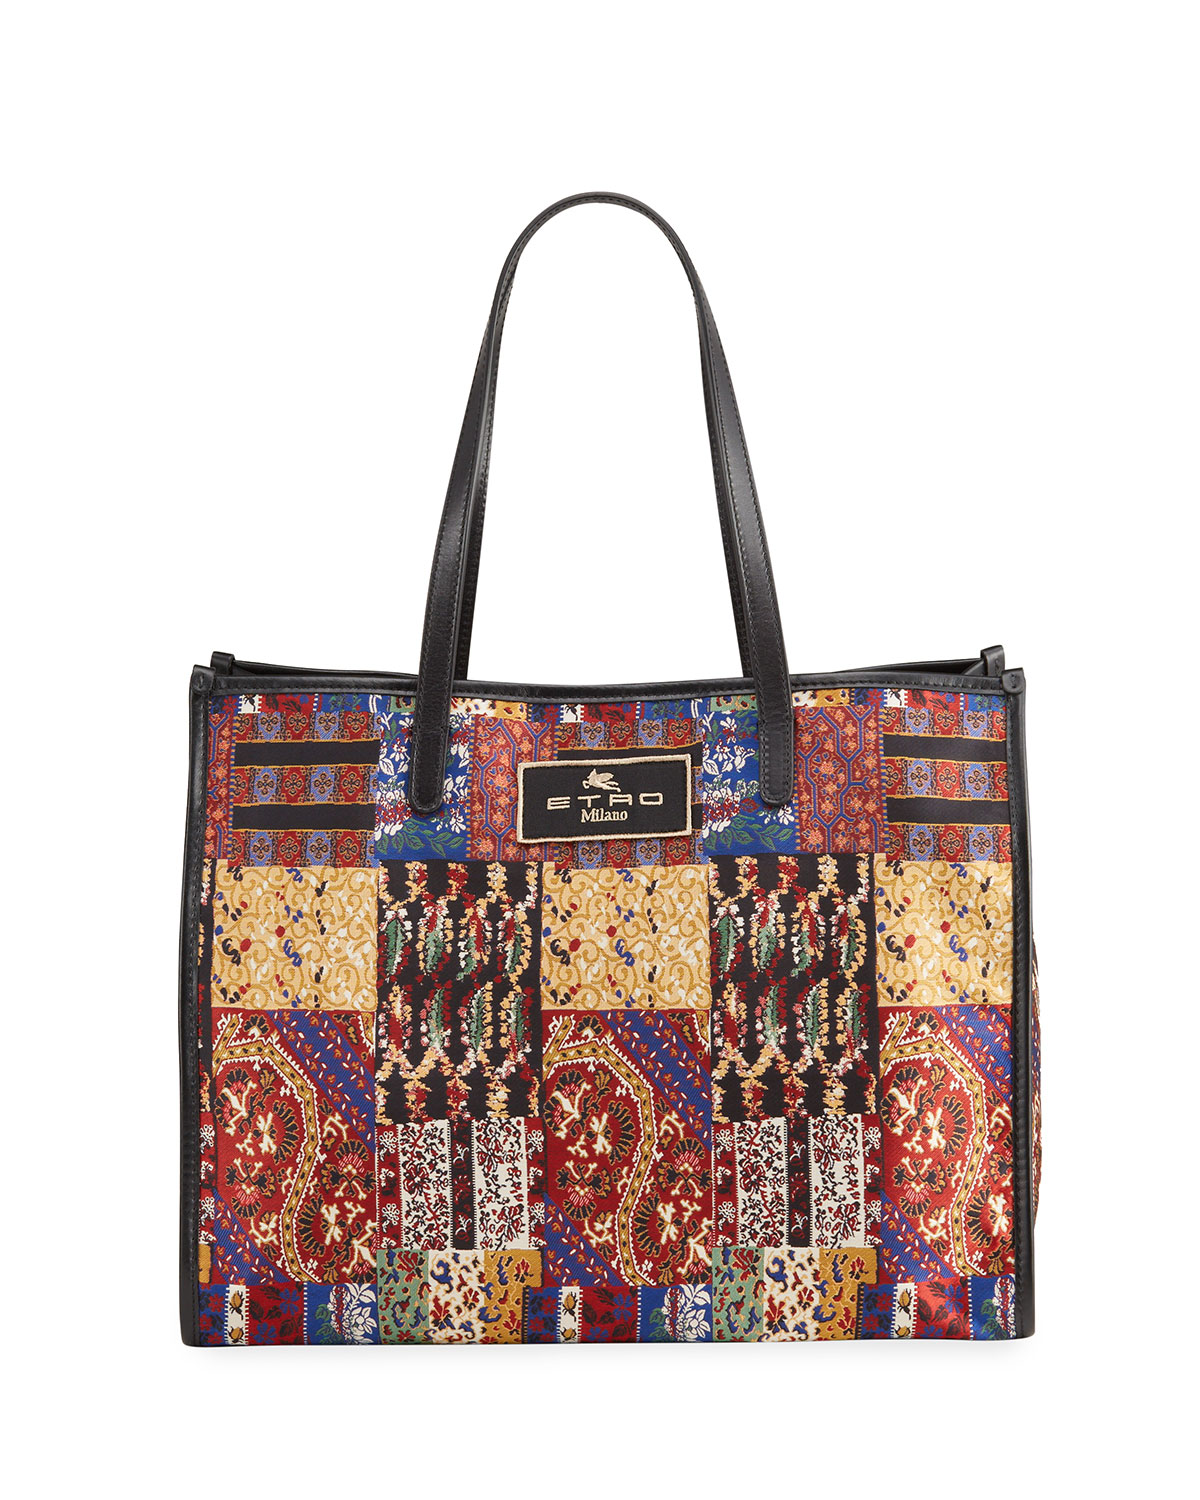 Etro XL Patchwork-Print Shopper Tote Bag